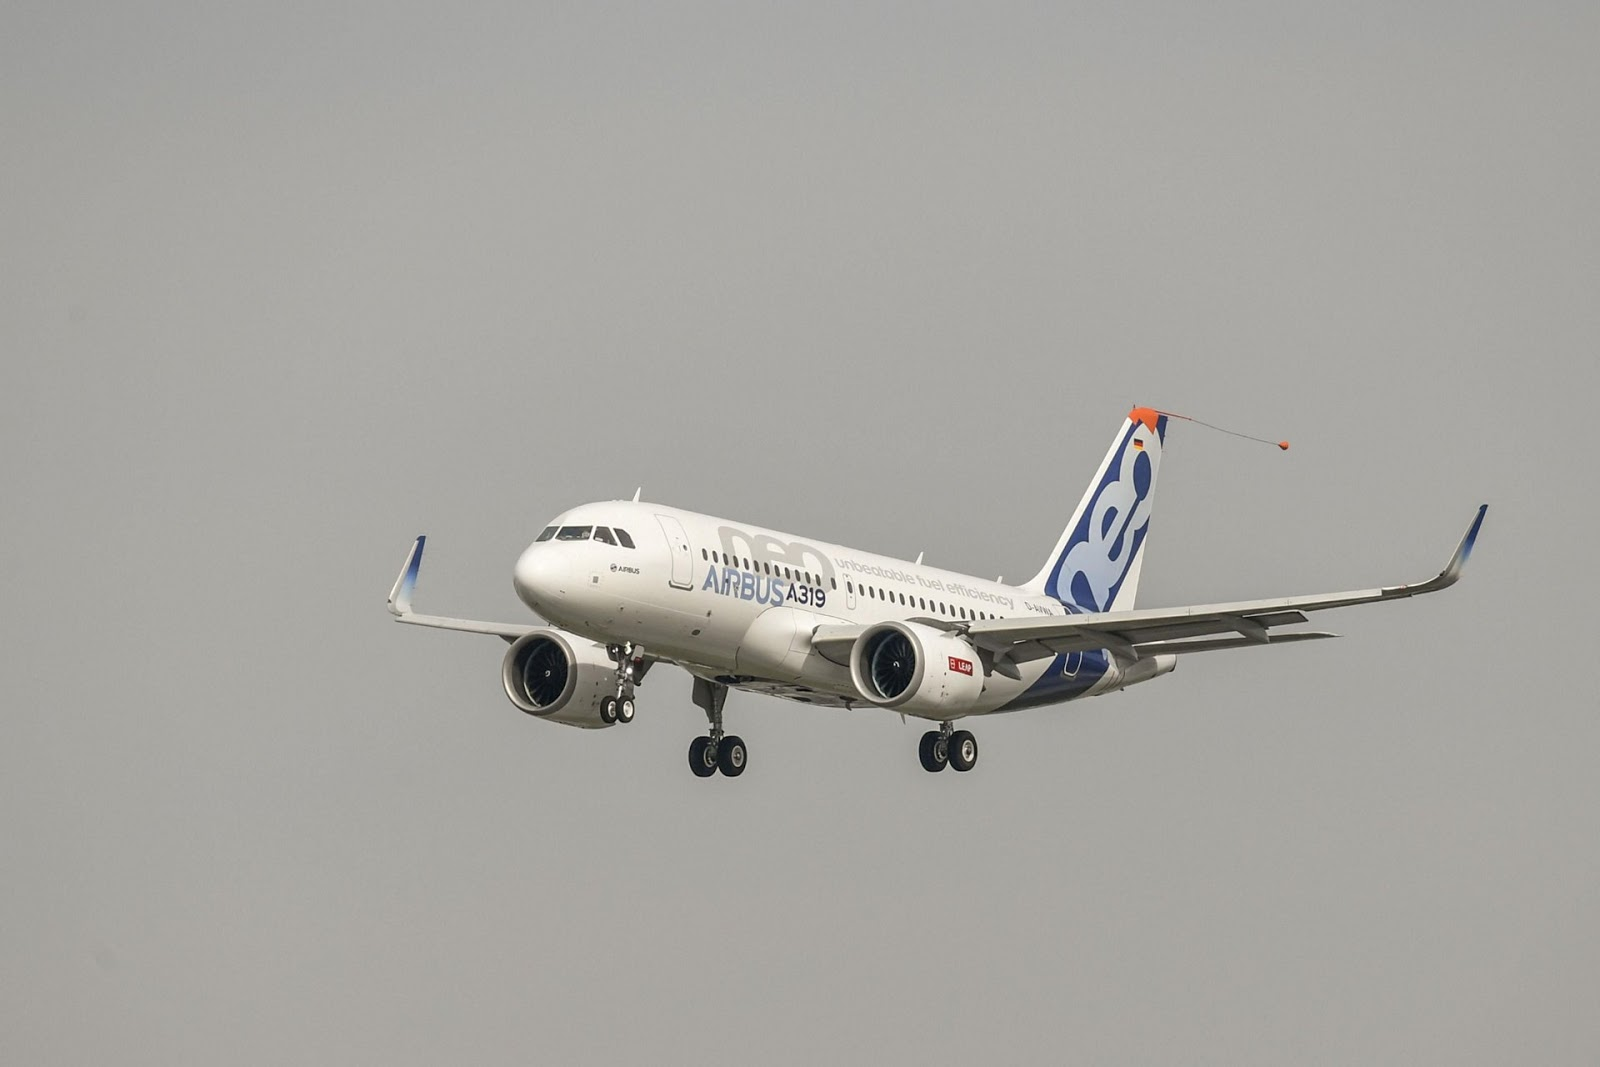 Air101 A319neo With Cfm Leap 1a Engines Wins Joint Type